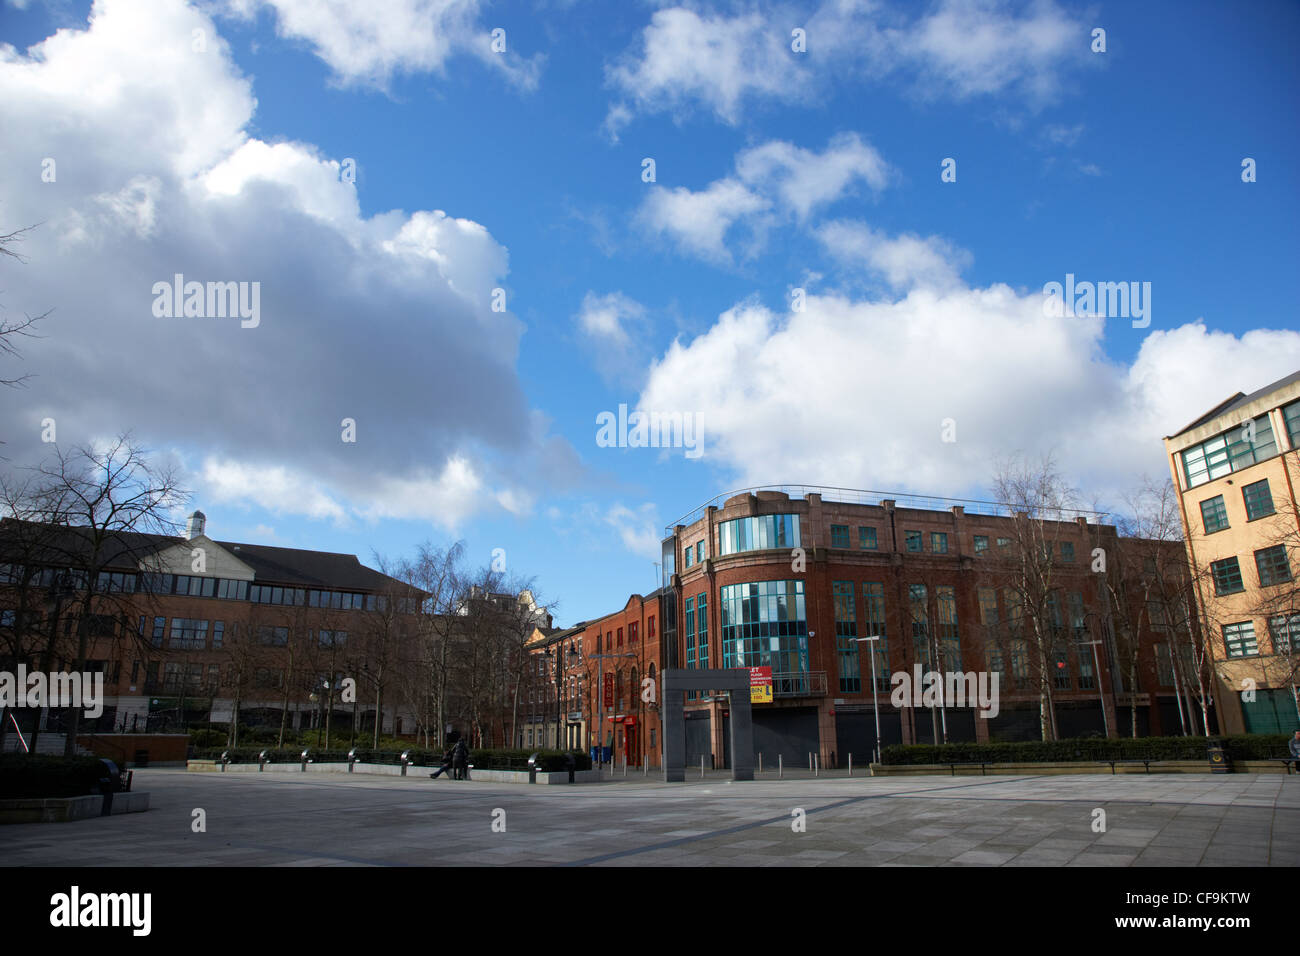 writers square in cathedral quarter Northern Ireland UK - Stock Image